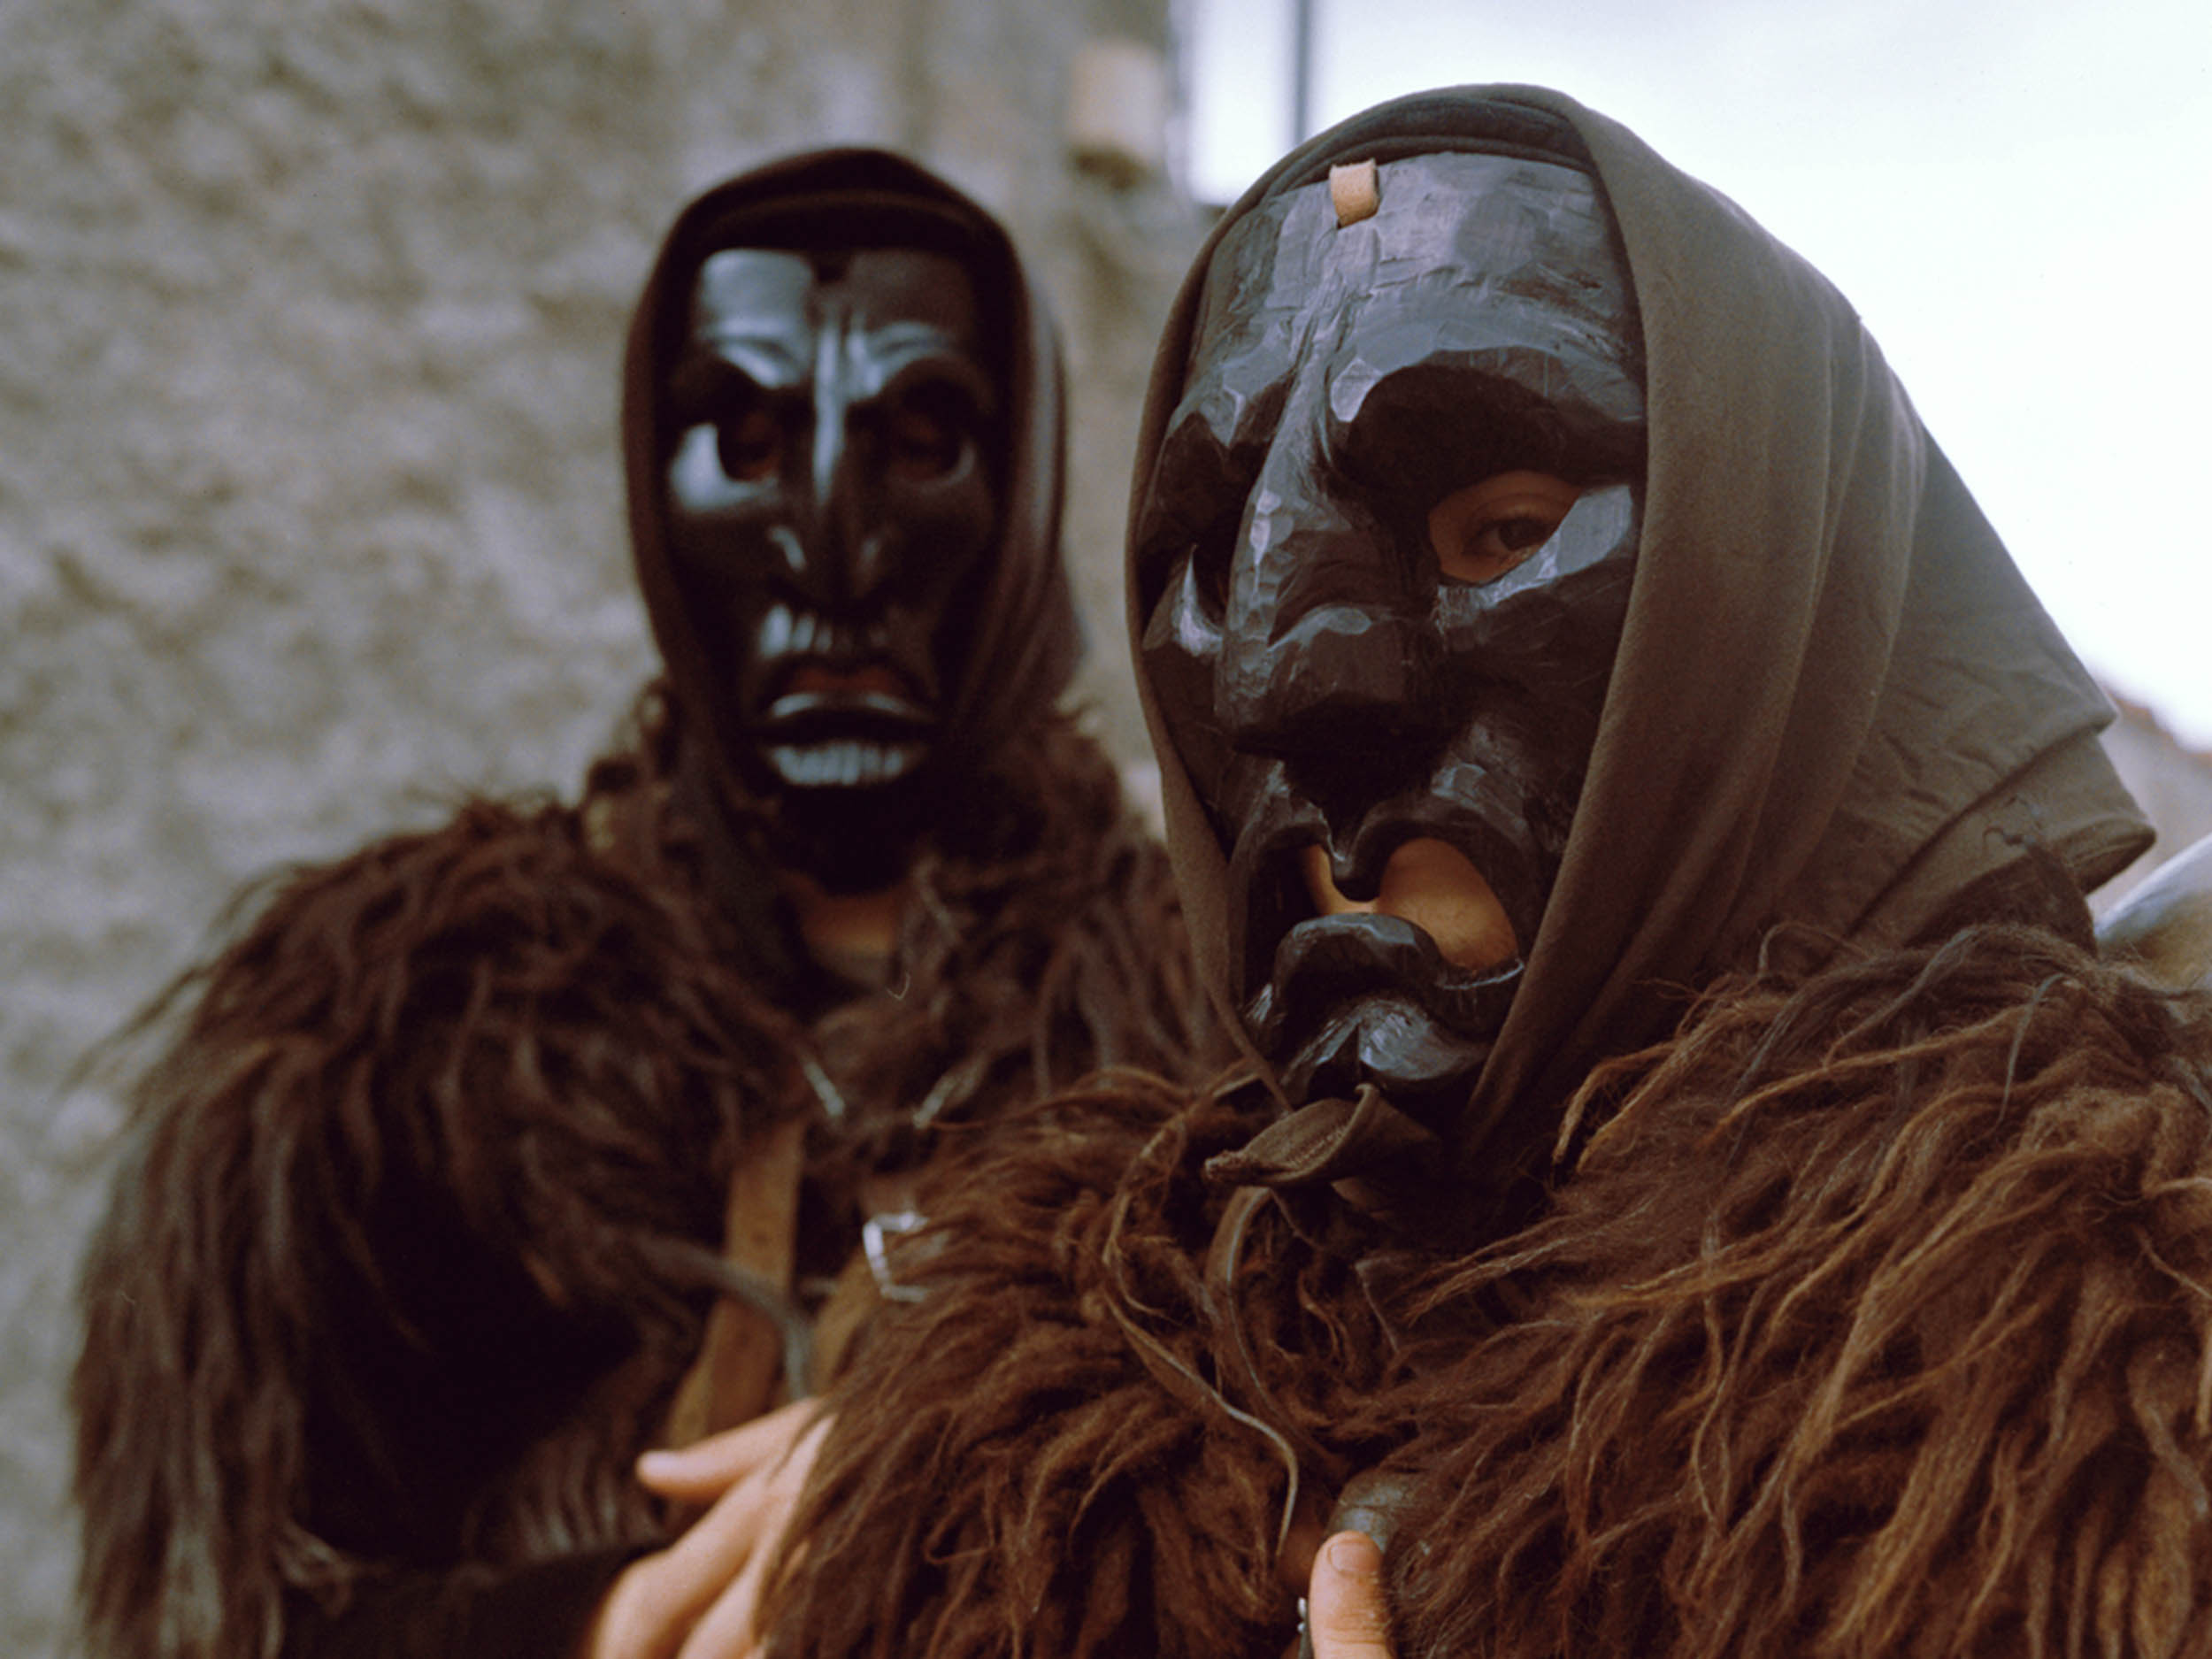 Behind the terrifying masks of the Mamuthones, a message of solidarity and renewal